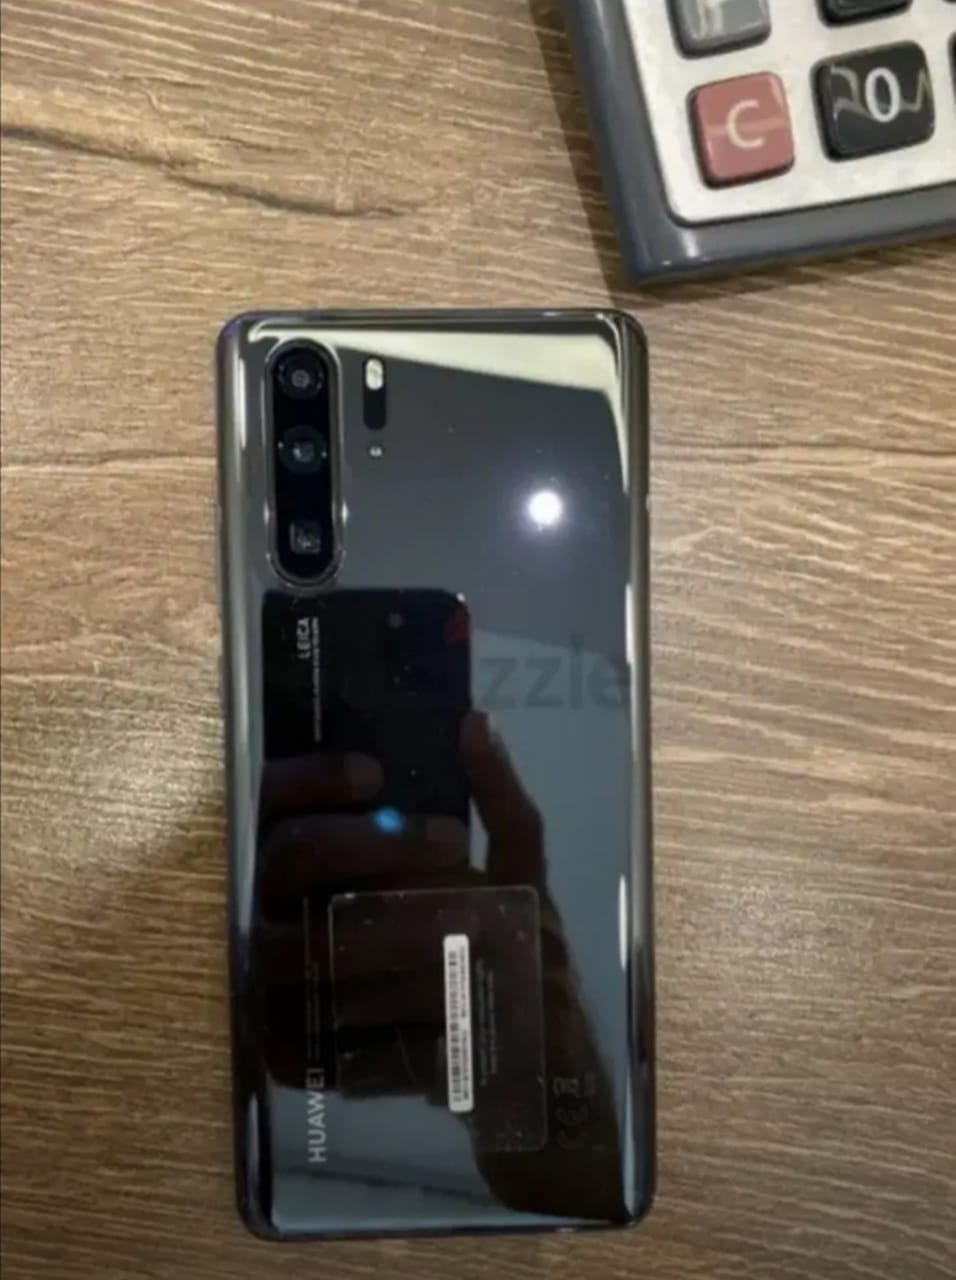 Huawei p30 pro for sale in pakistan - photo 2